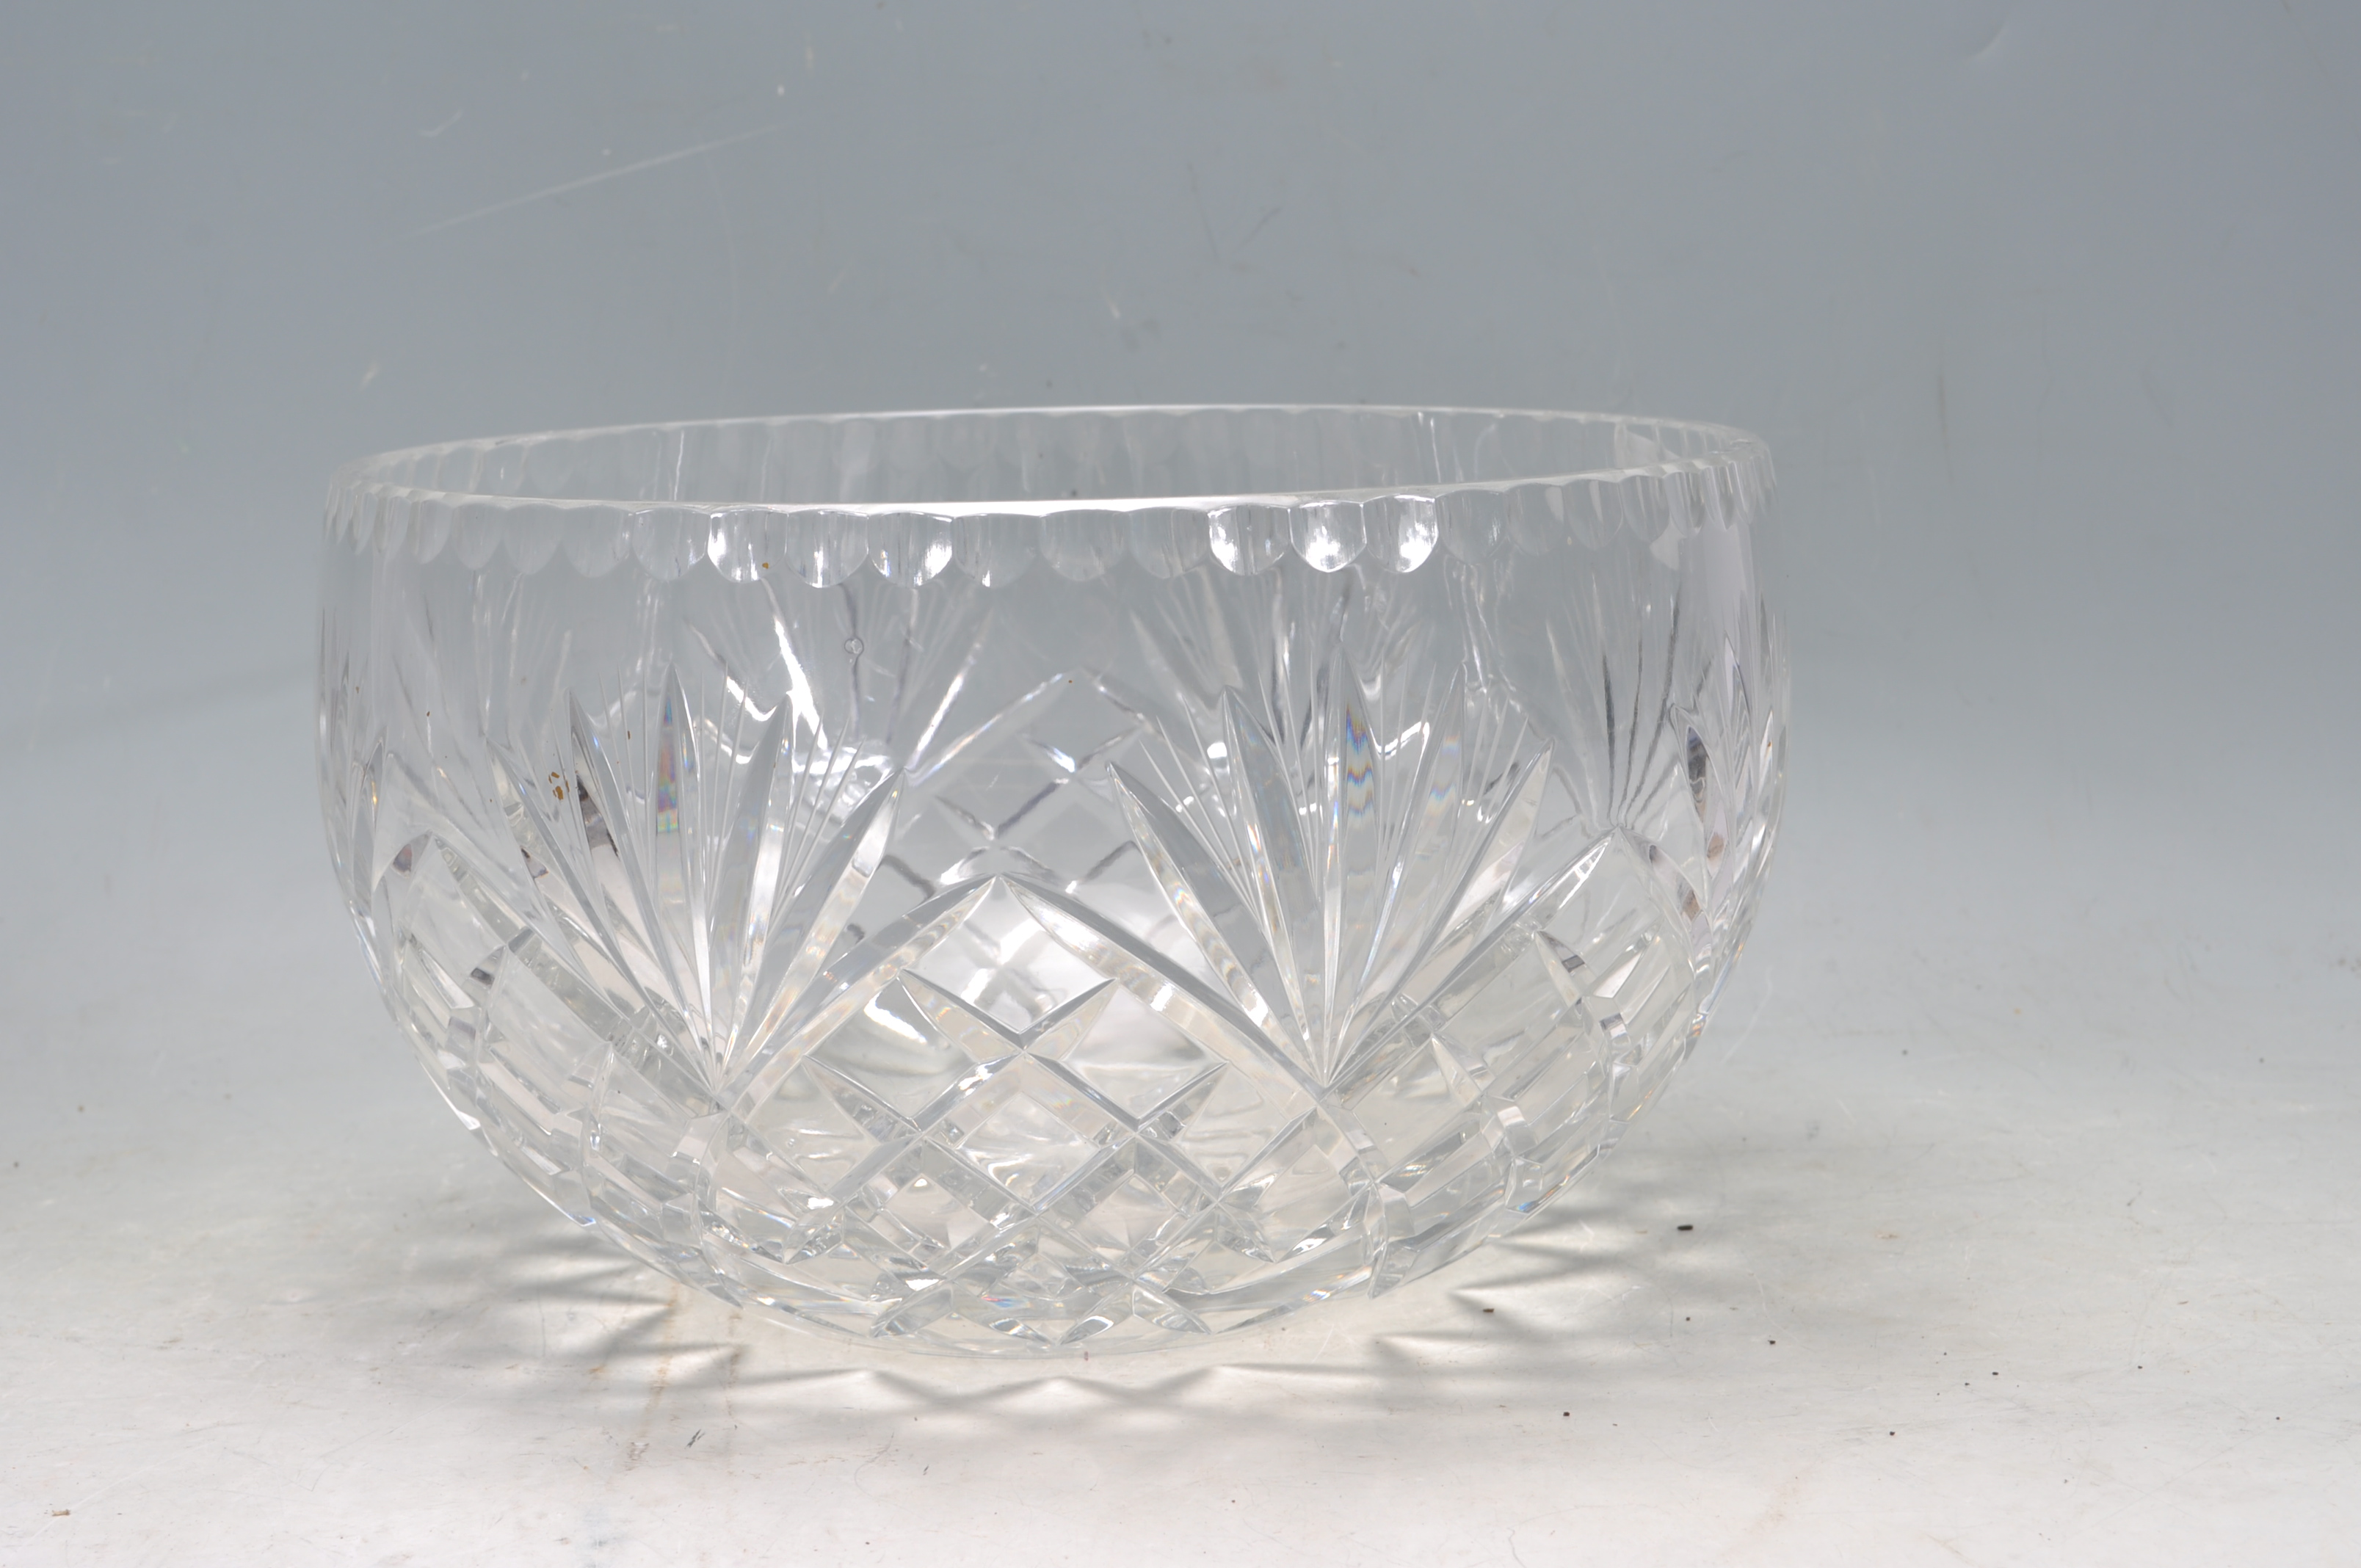 VINTAGE 20TH CENTURY WATERFORD CRYSTAL GLASS BOWL - Image 2 of 5